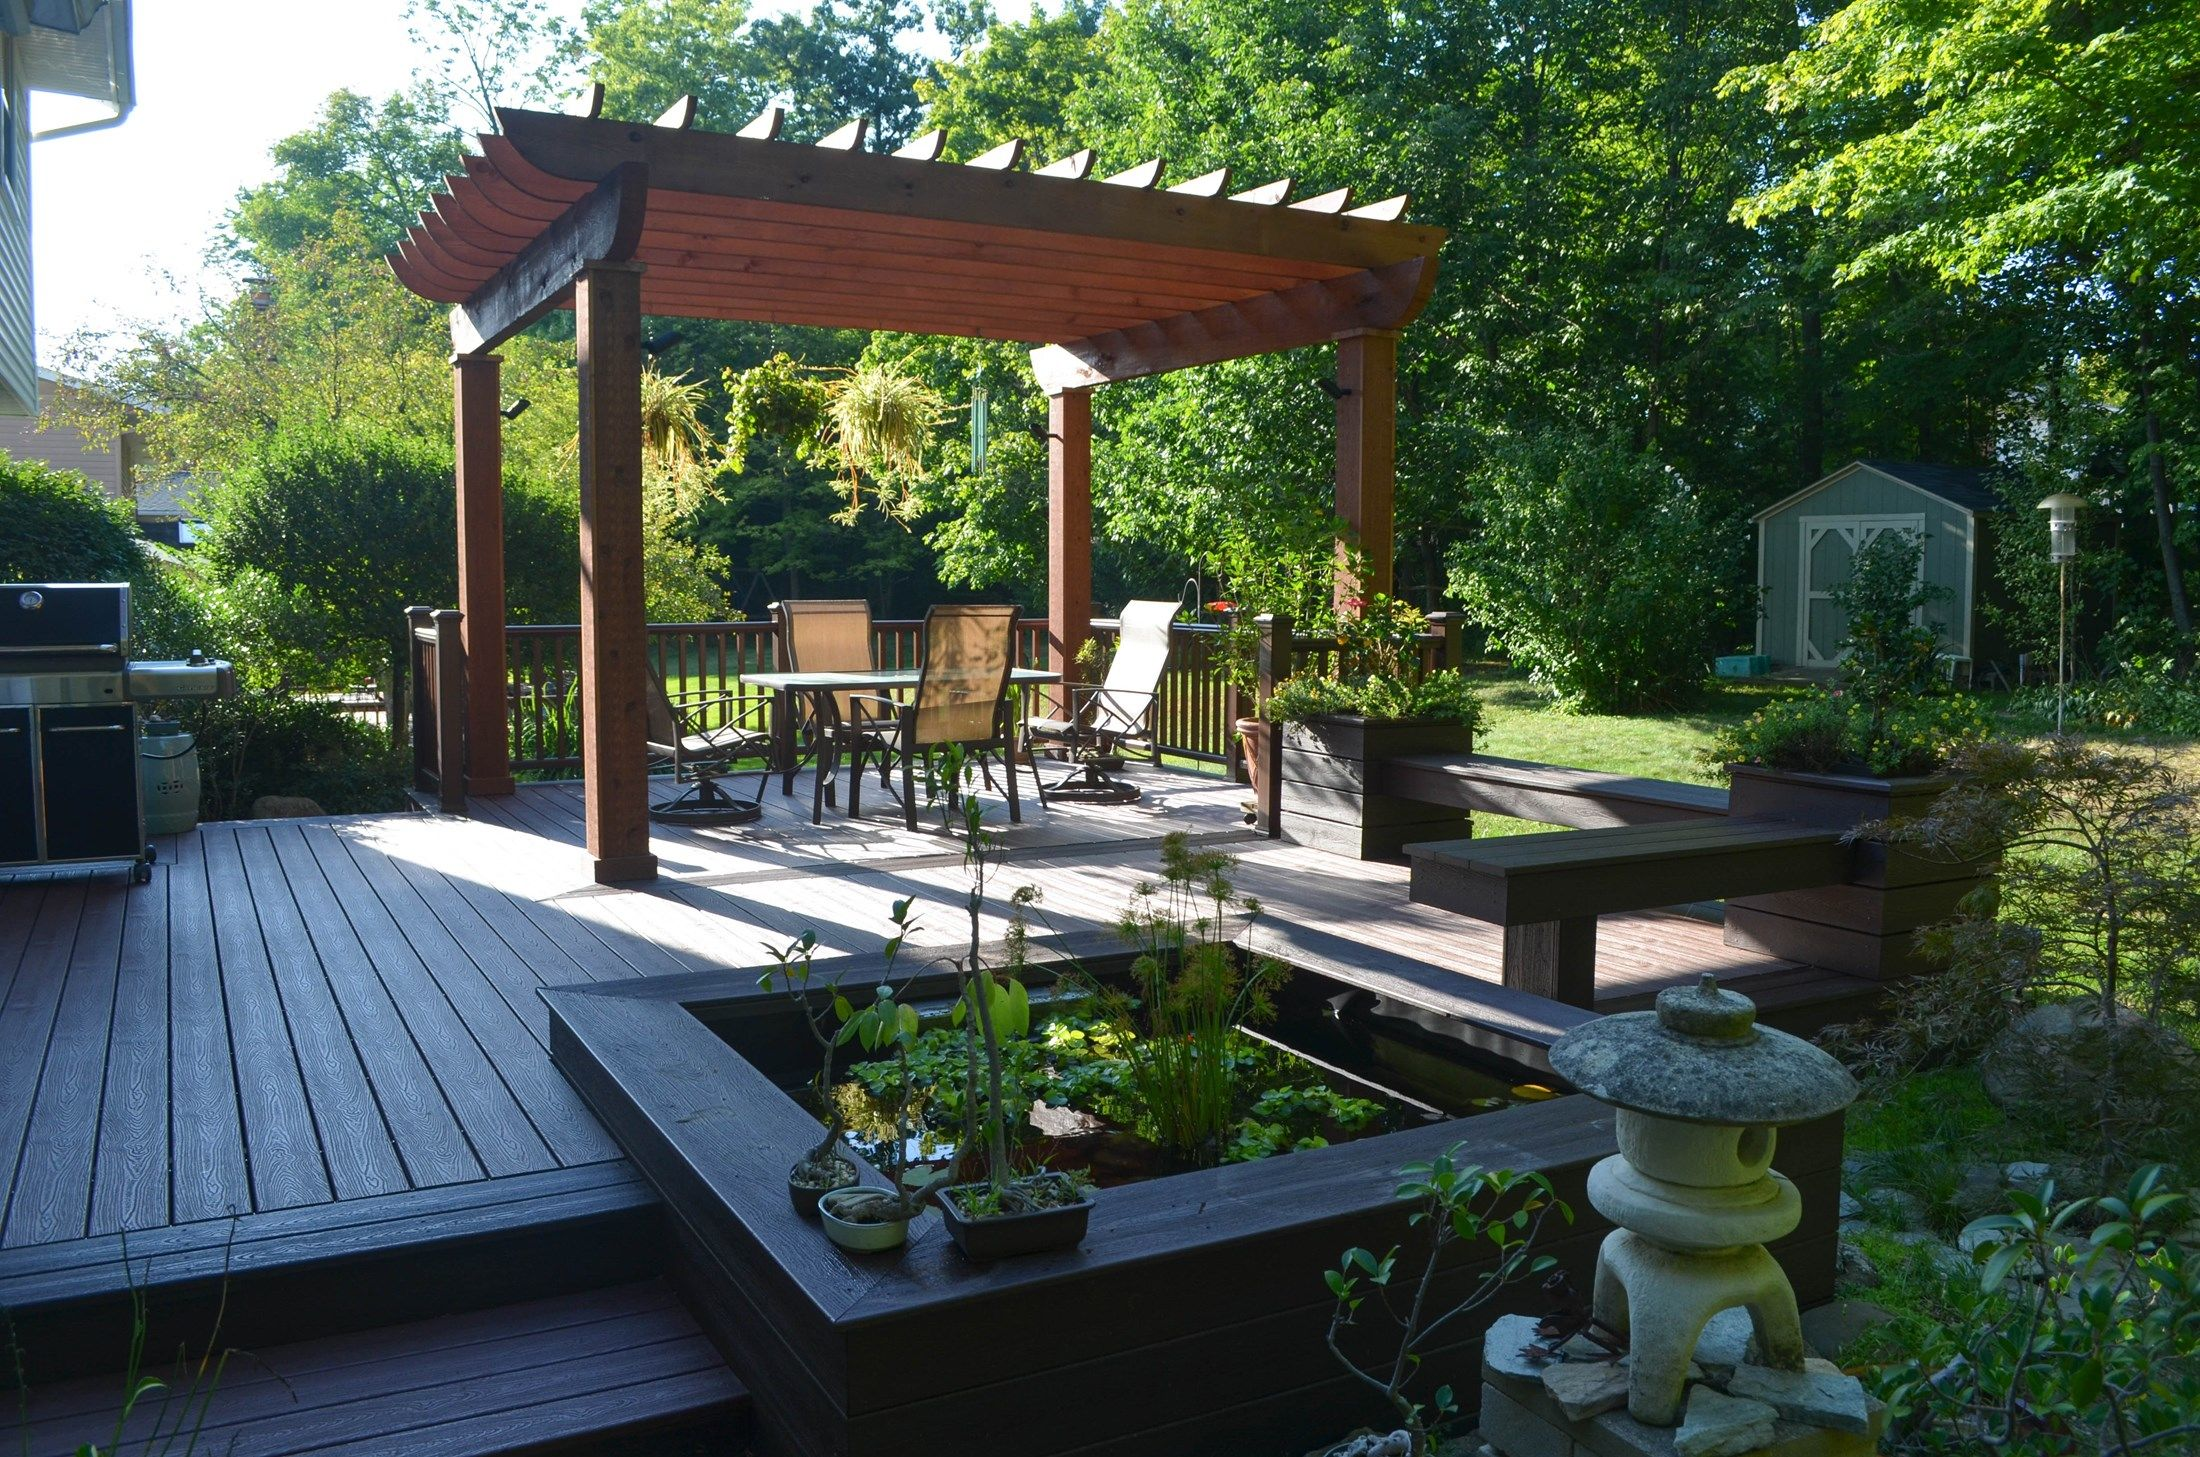 Japanese Garden Deck - Picture 6879